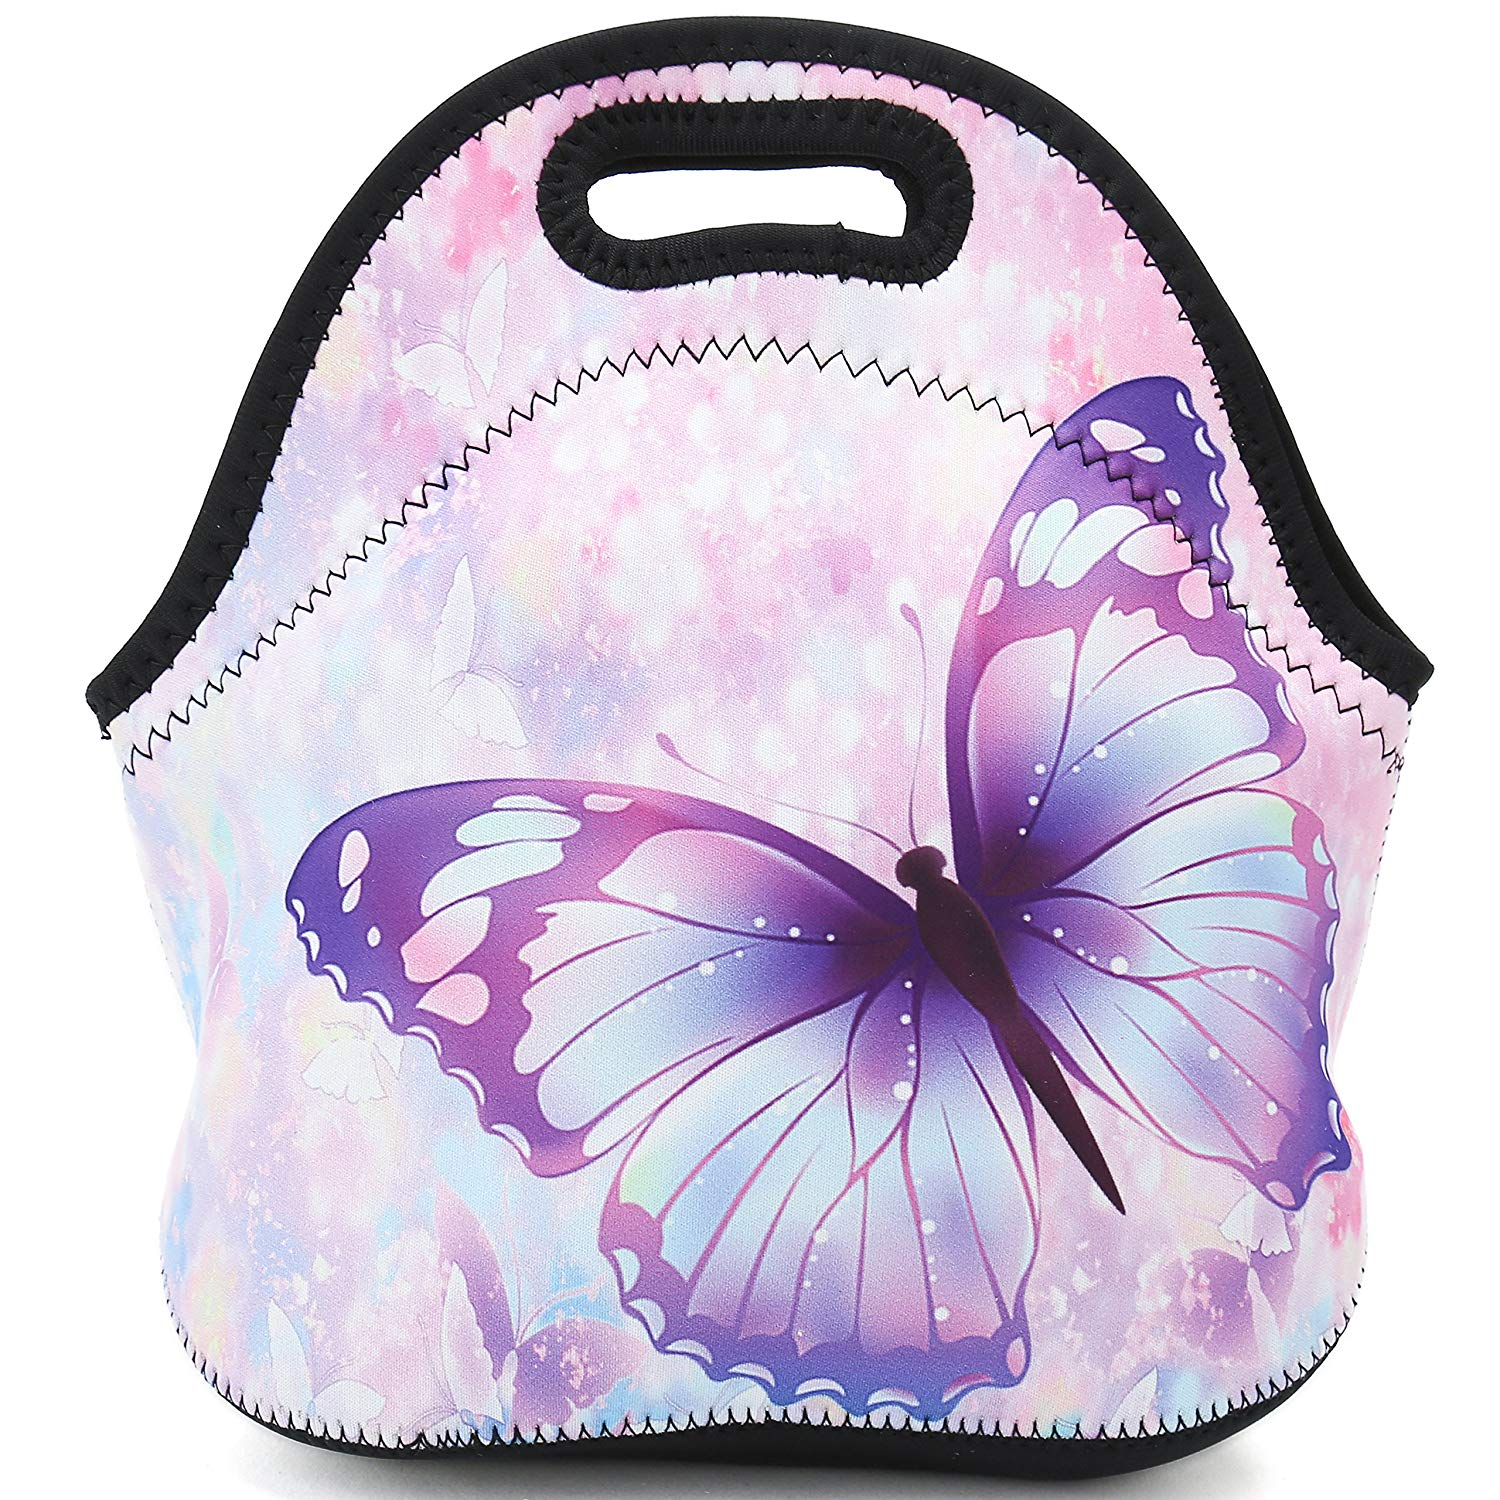 Neoprene Reusable Insulated Lunch Bag - Butterfly